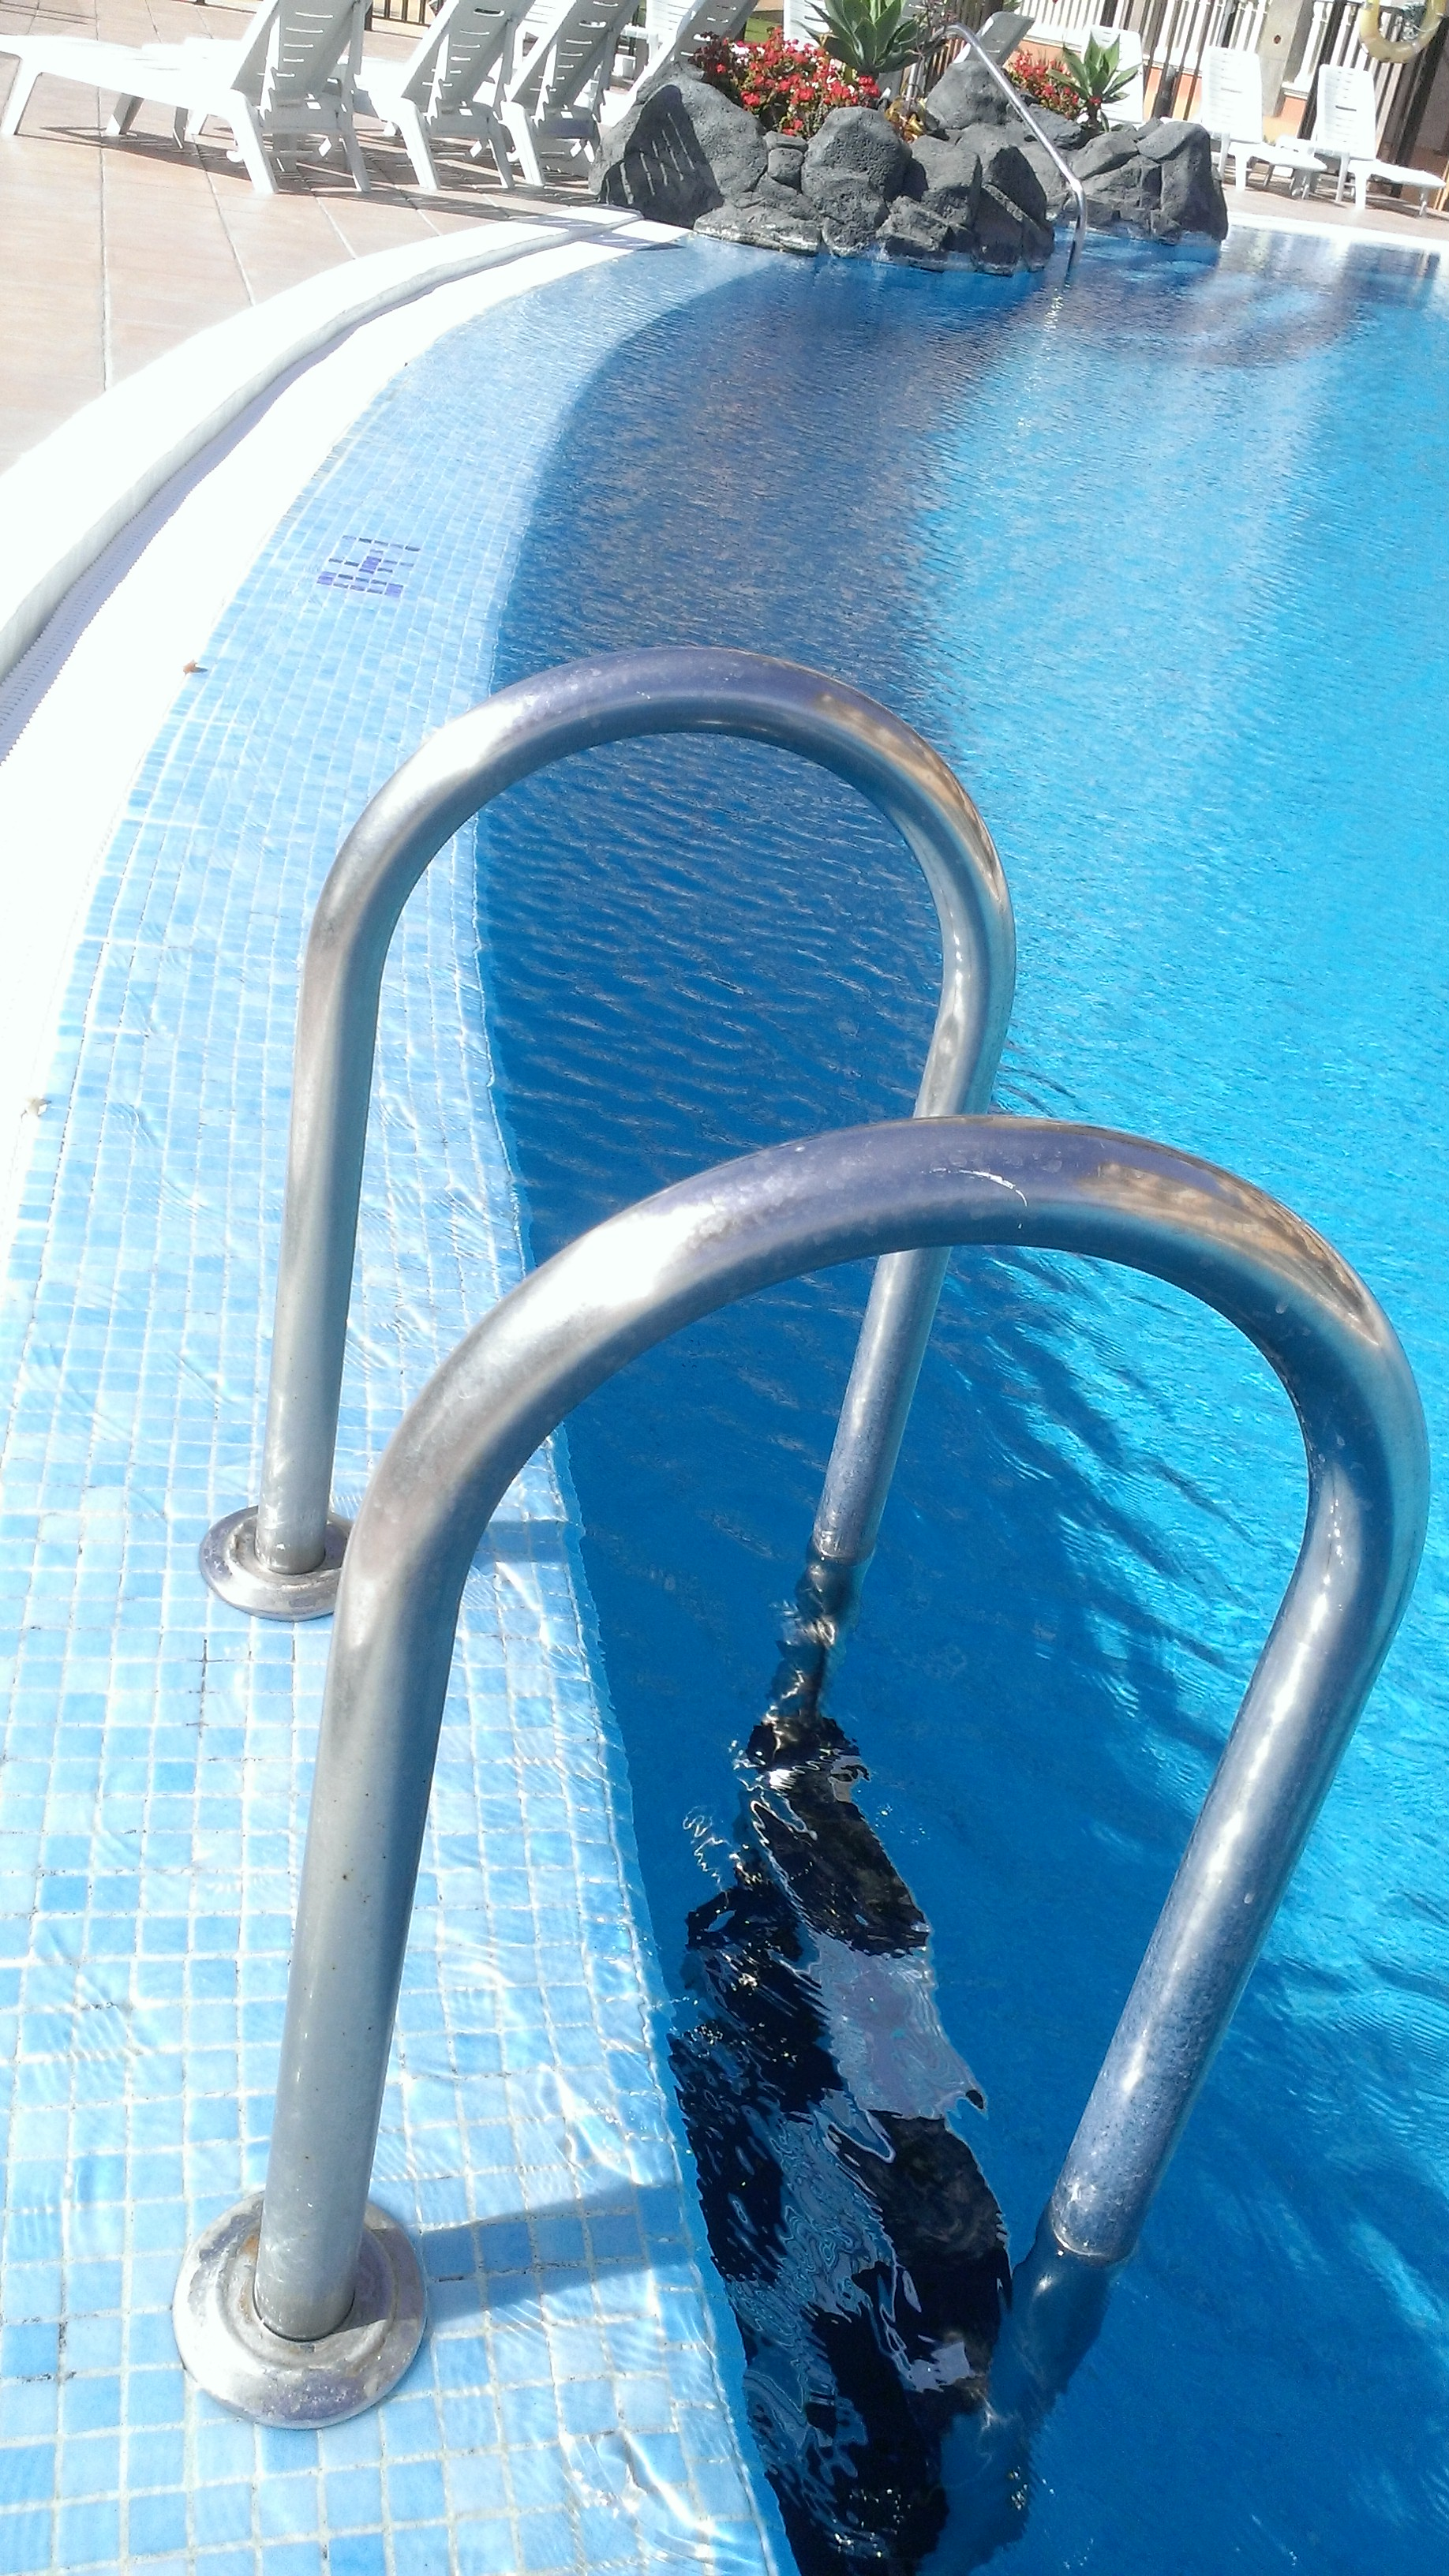 Scaletta piscina dritta in acciaio inox astral pool for Astral piscinas